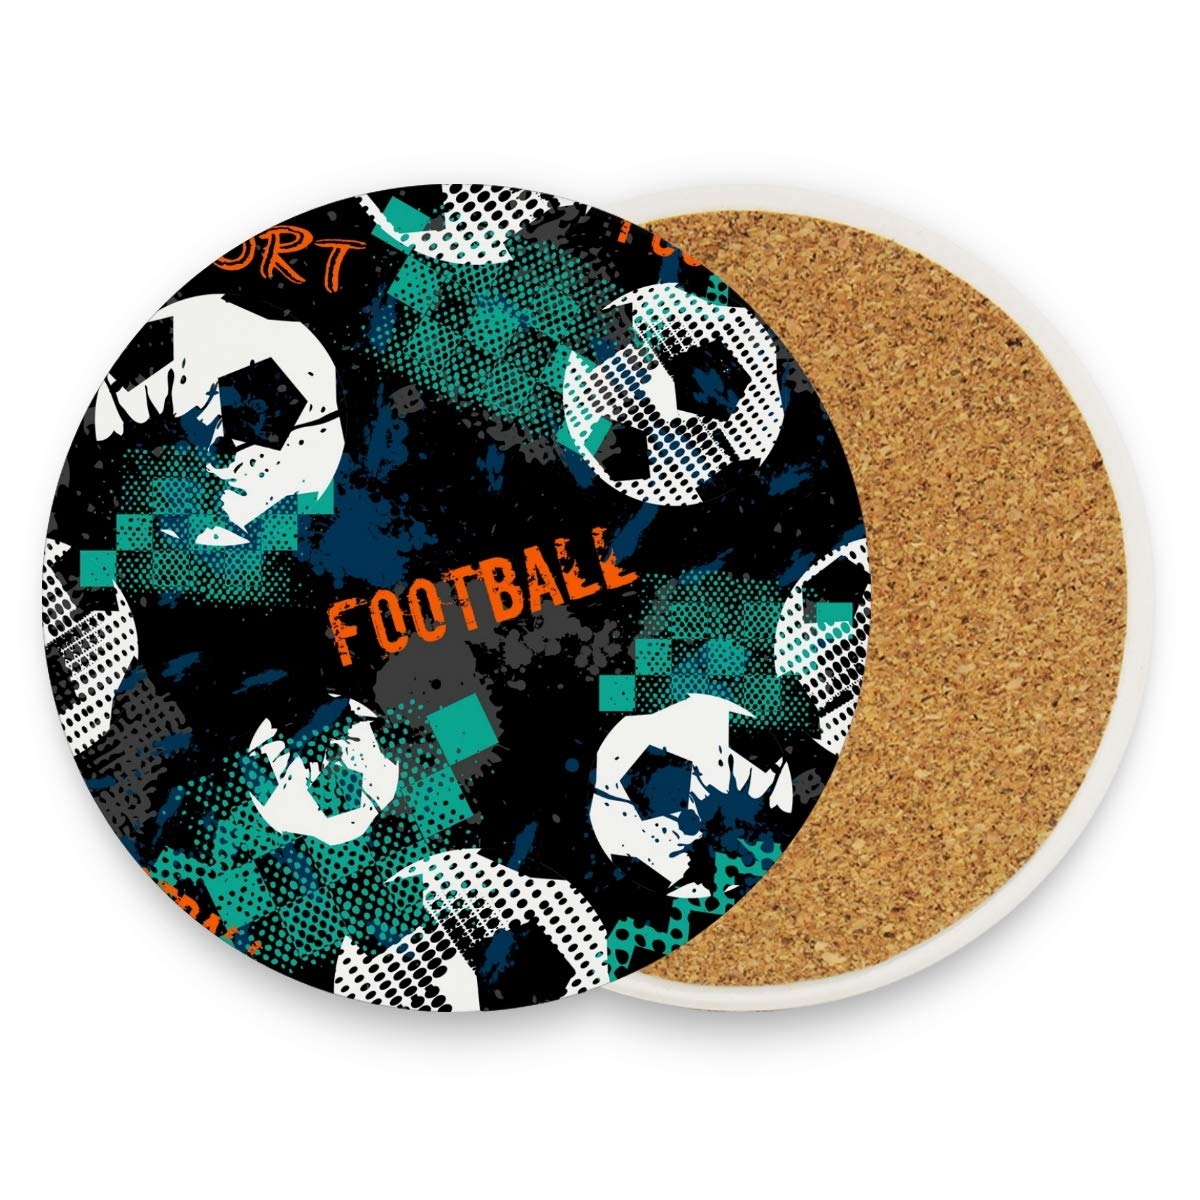 Lot de 1 dessous de verre rond absorbant en céramique Motif football Noir/vert, Céramique, multicolore, Set of 4